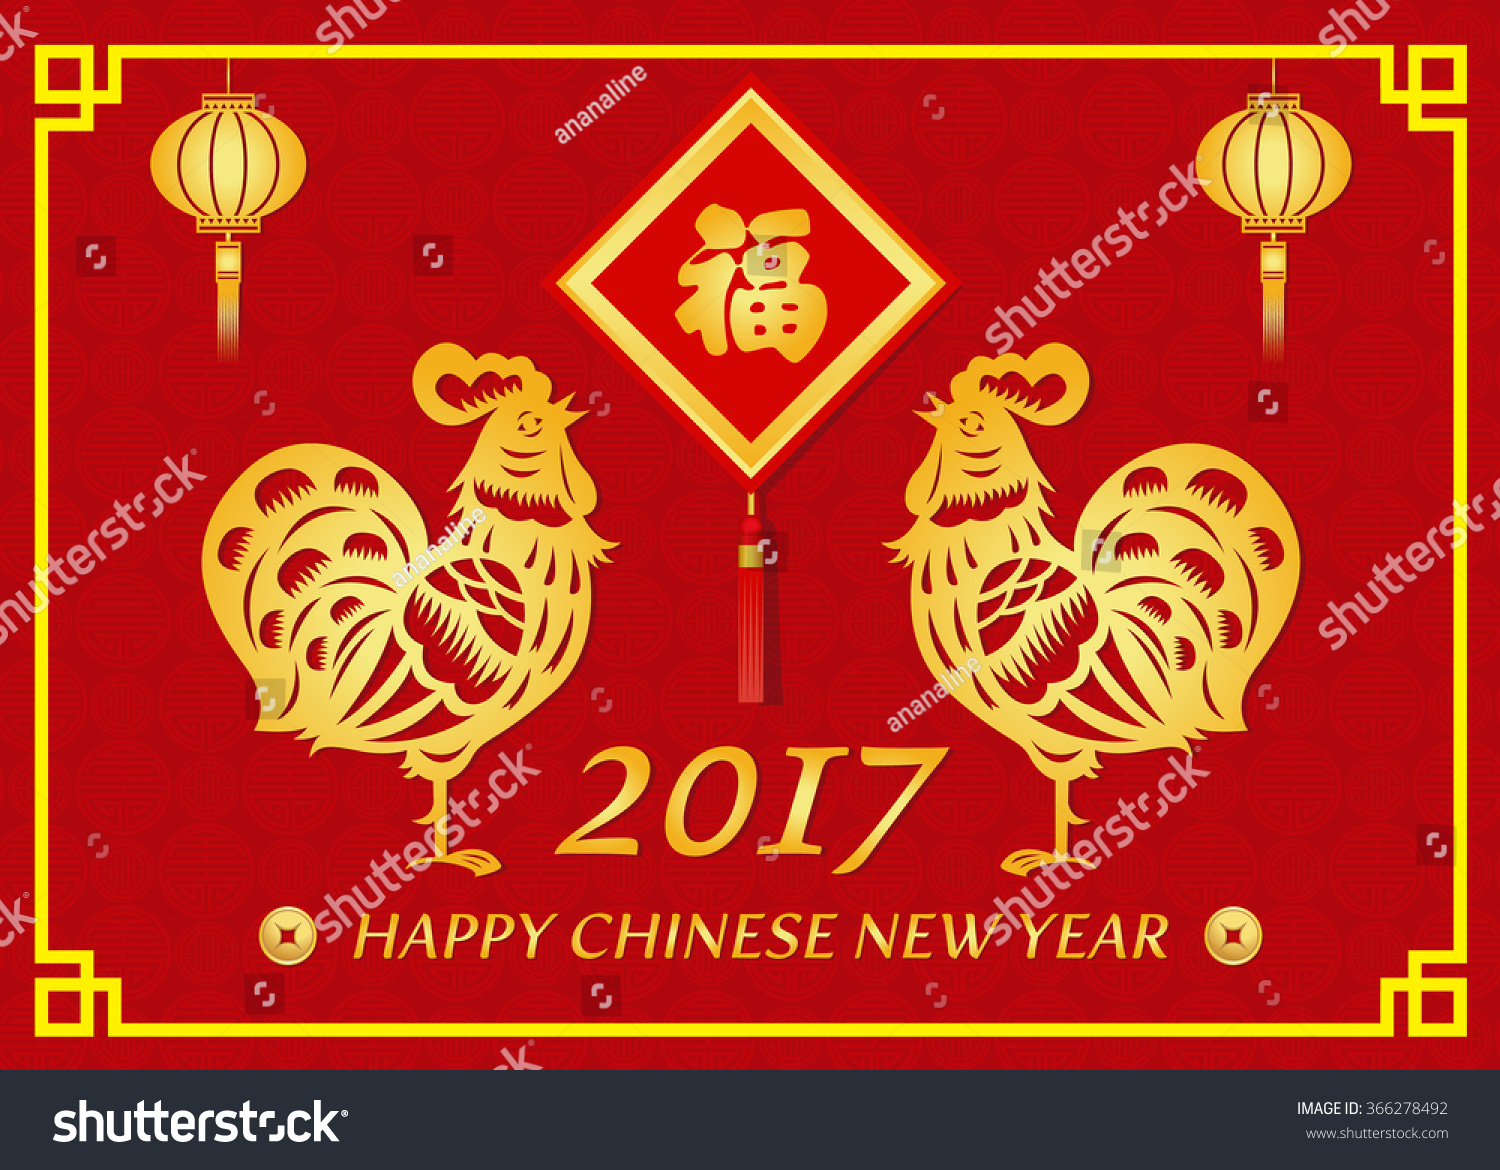 happy chinese new year 2017 card stock vector 366278492